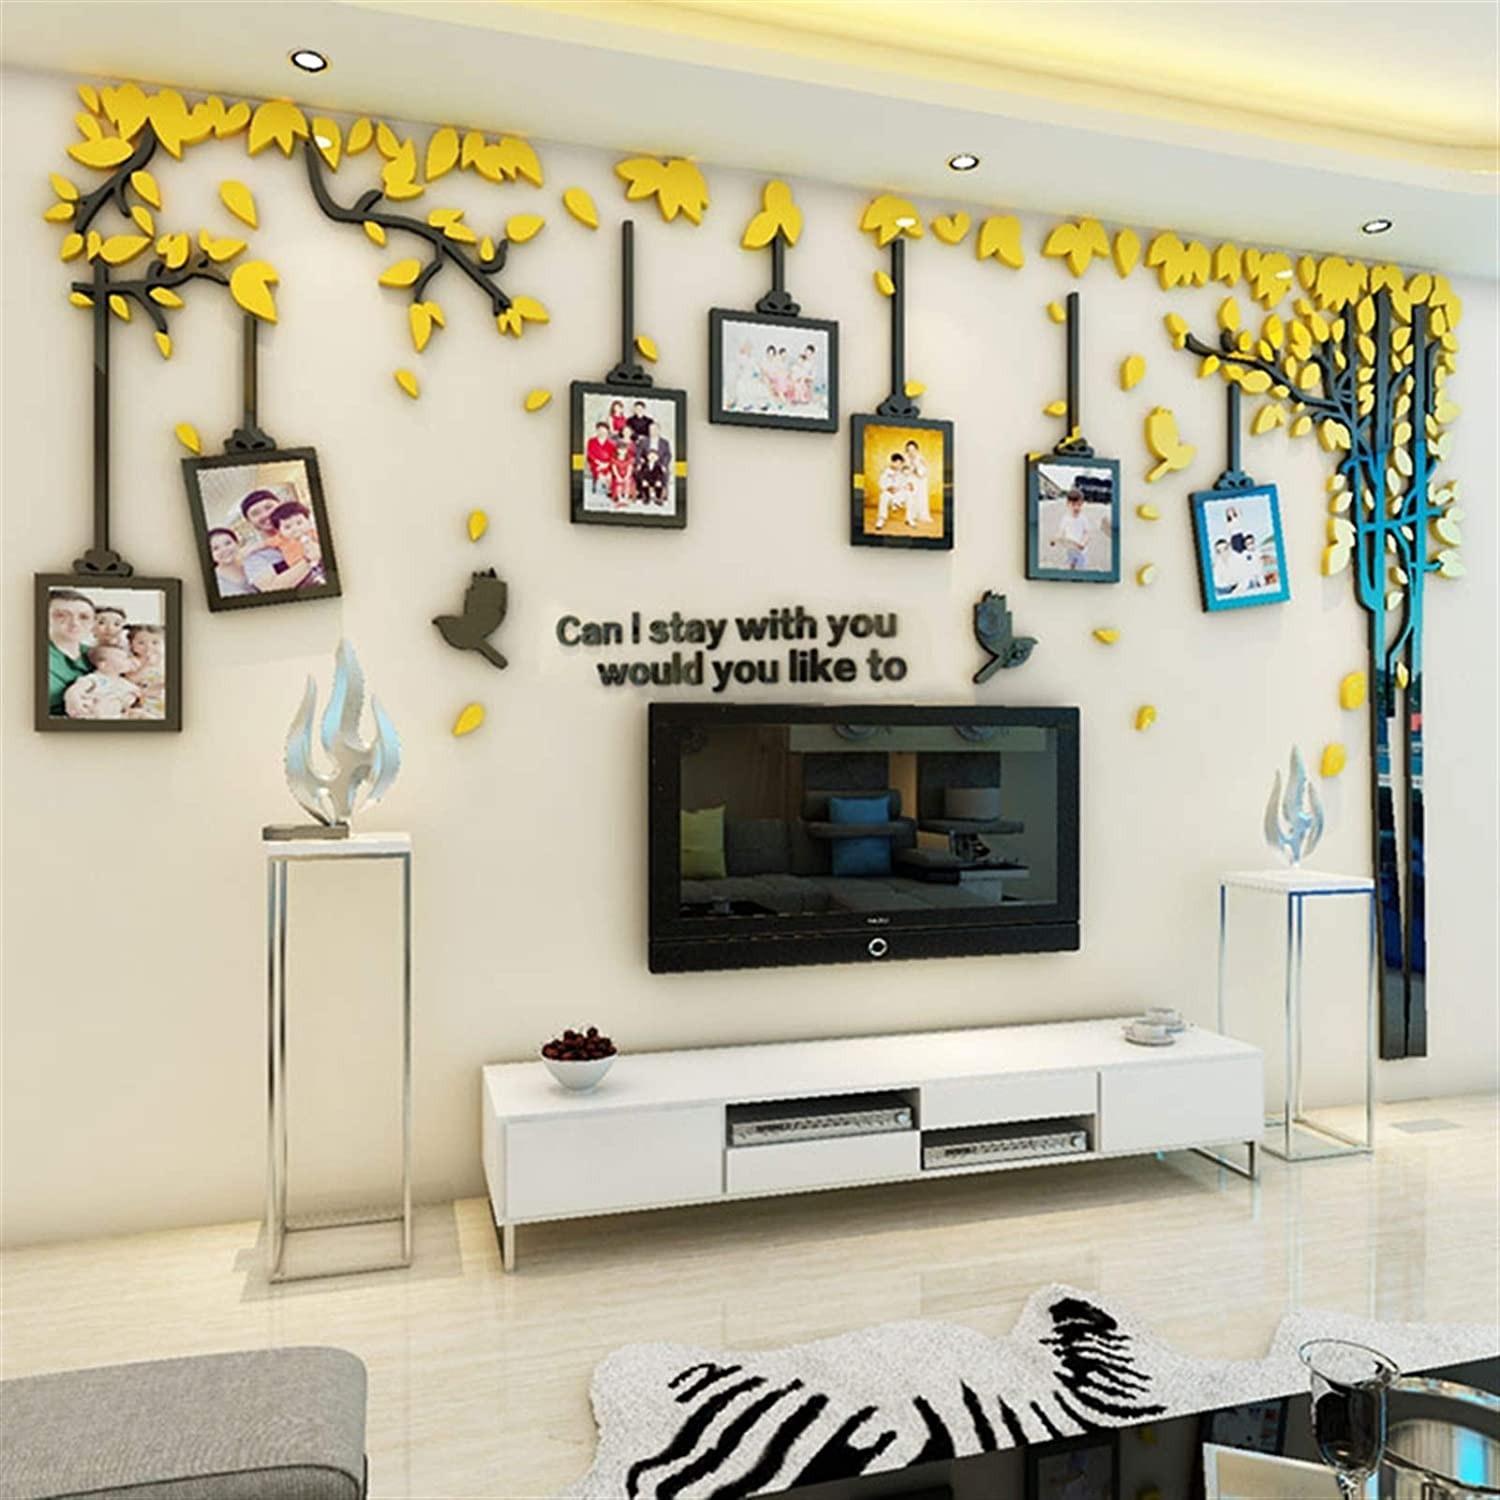 Max 68% OFF Excellence Universal all kinds of wall 3 mural Frame decorations Photo